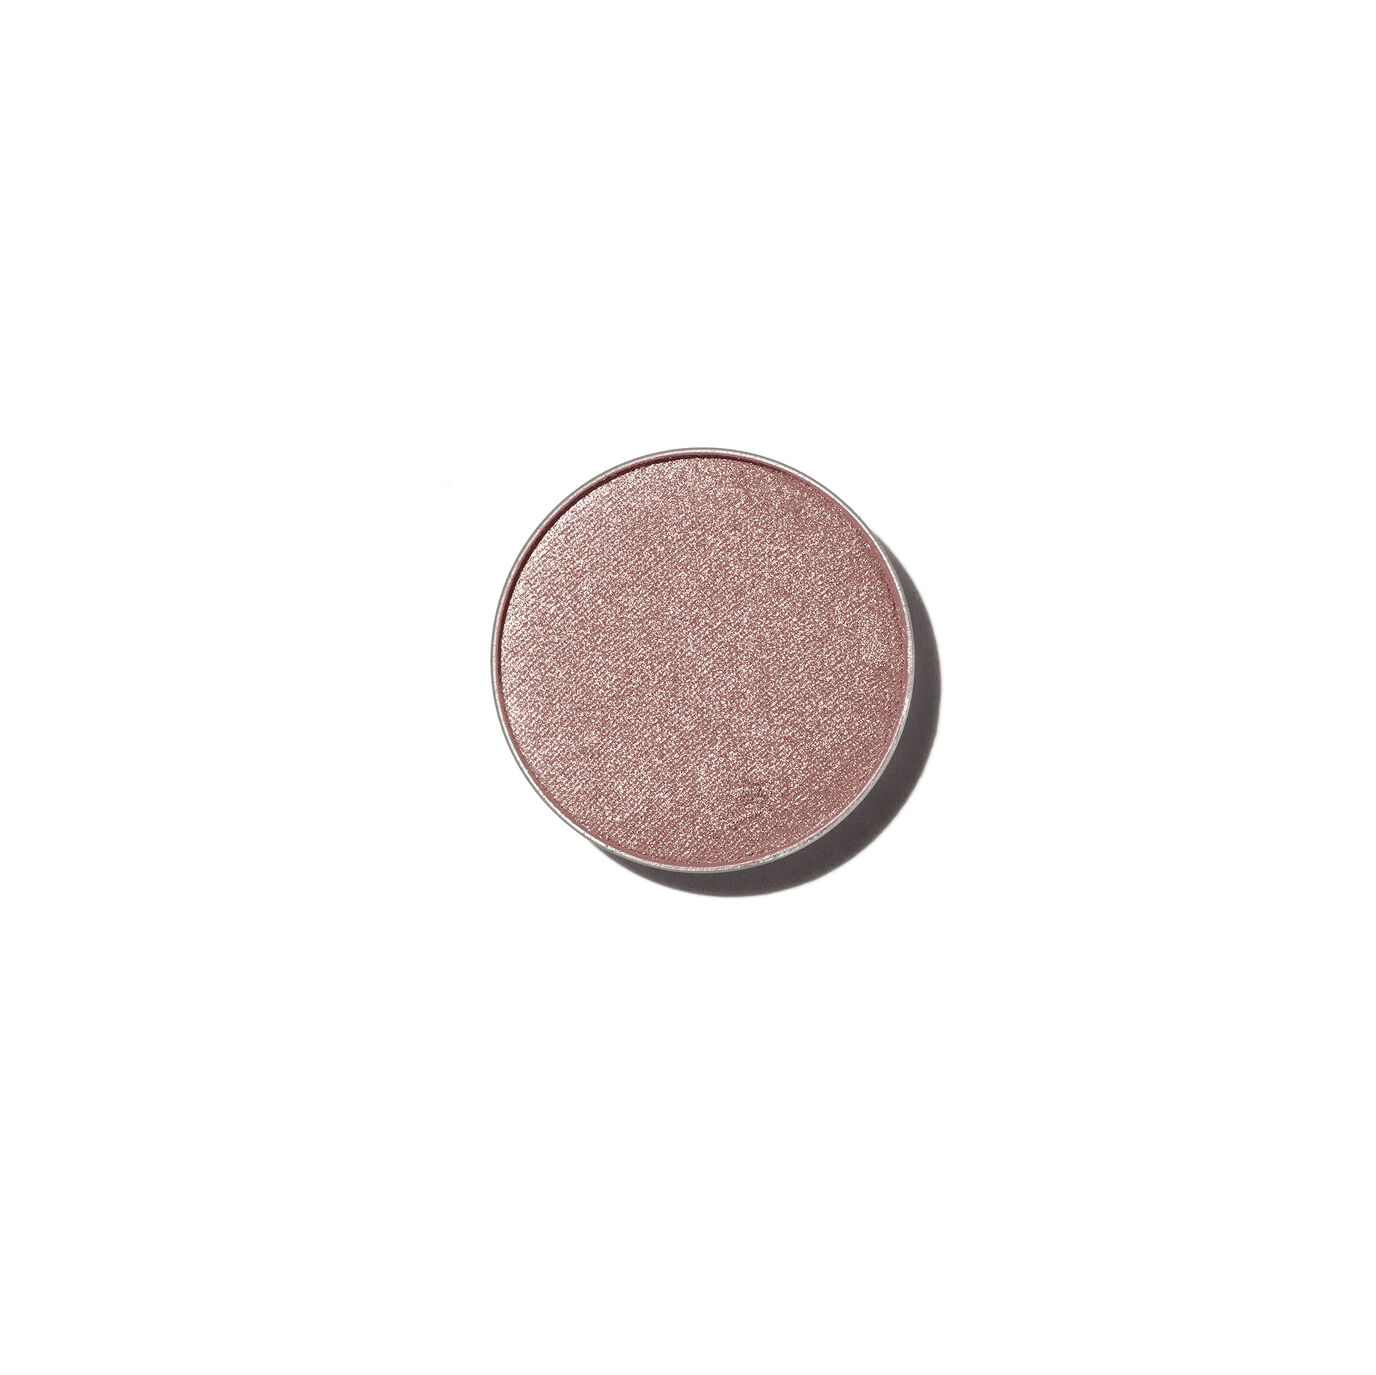 Eyeshadow Singles - Pink Champagne